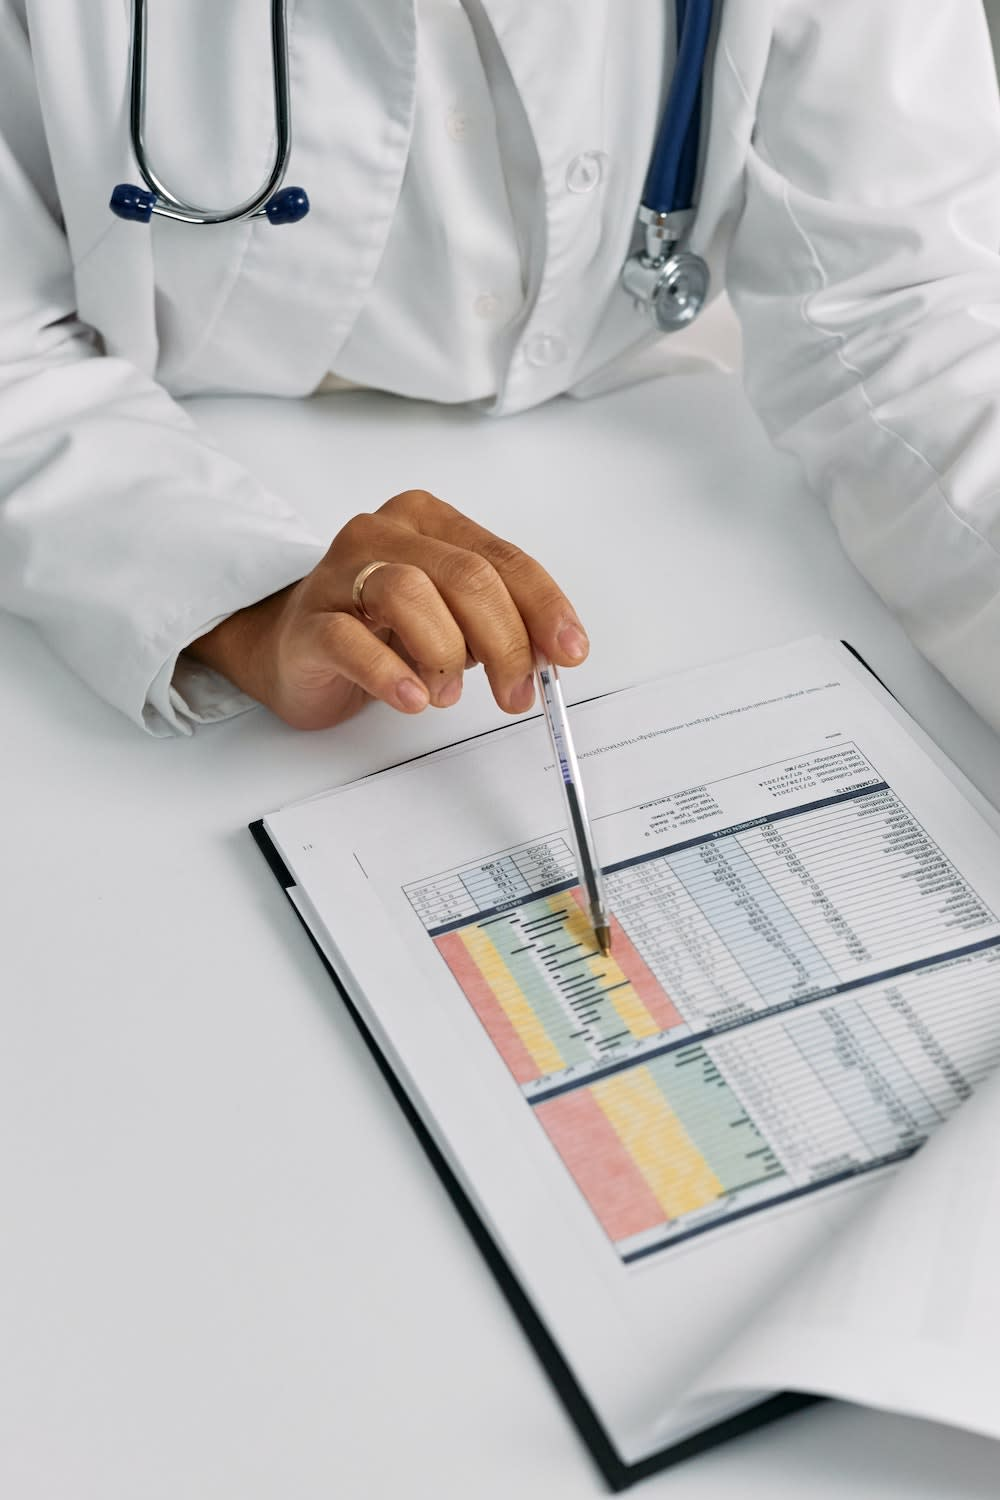 A doctor reading a patient's medical report